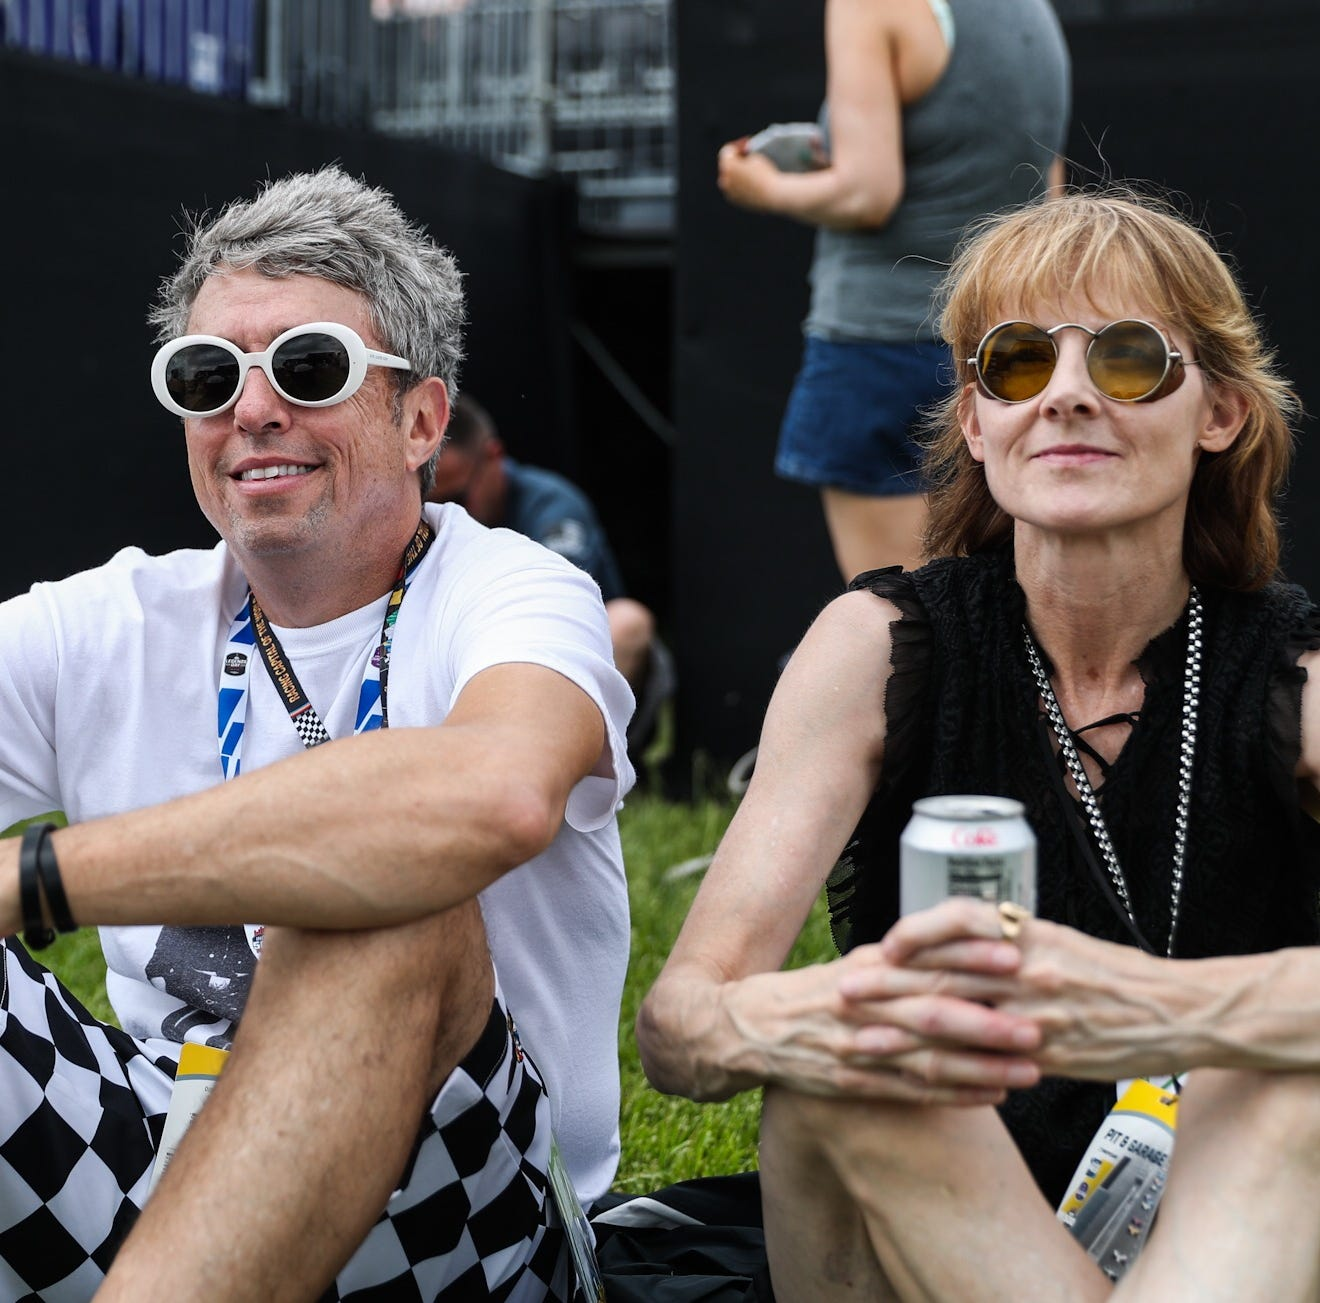 Indy 500 Carb Day fun report: What we see at the party